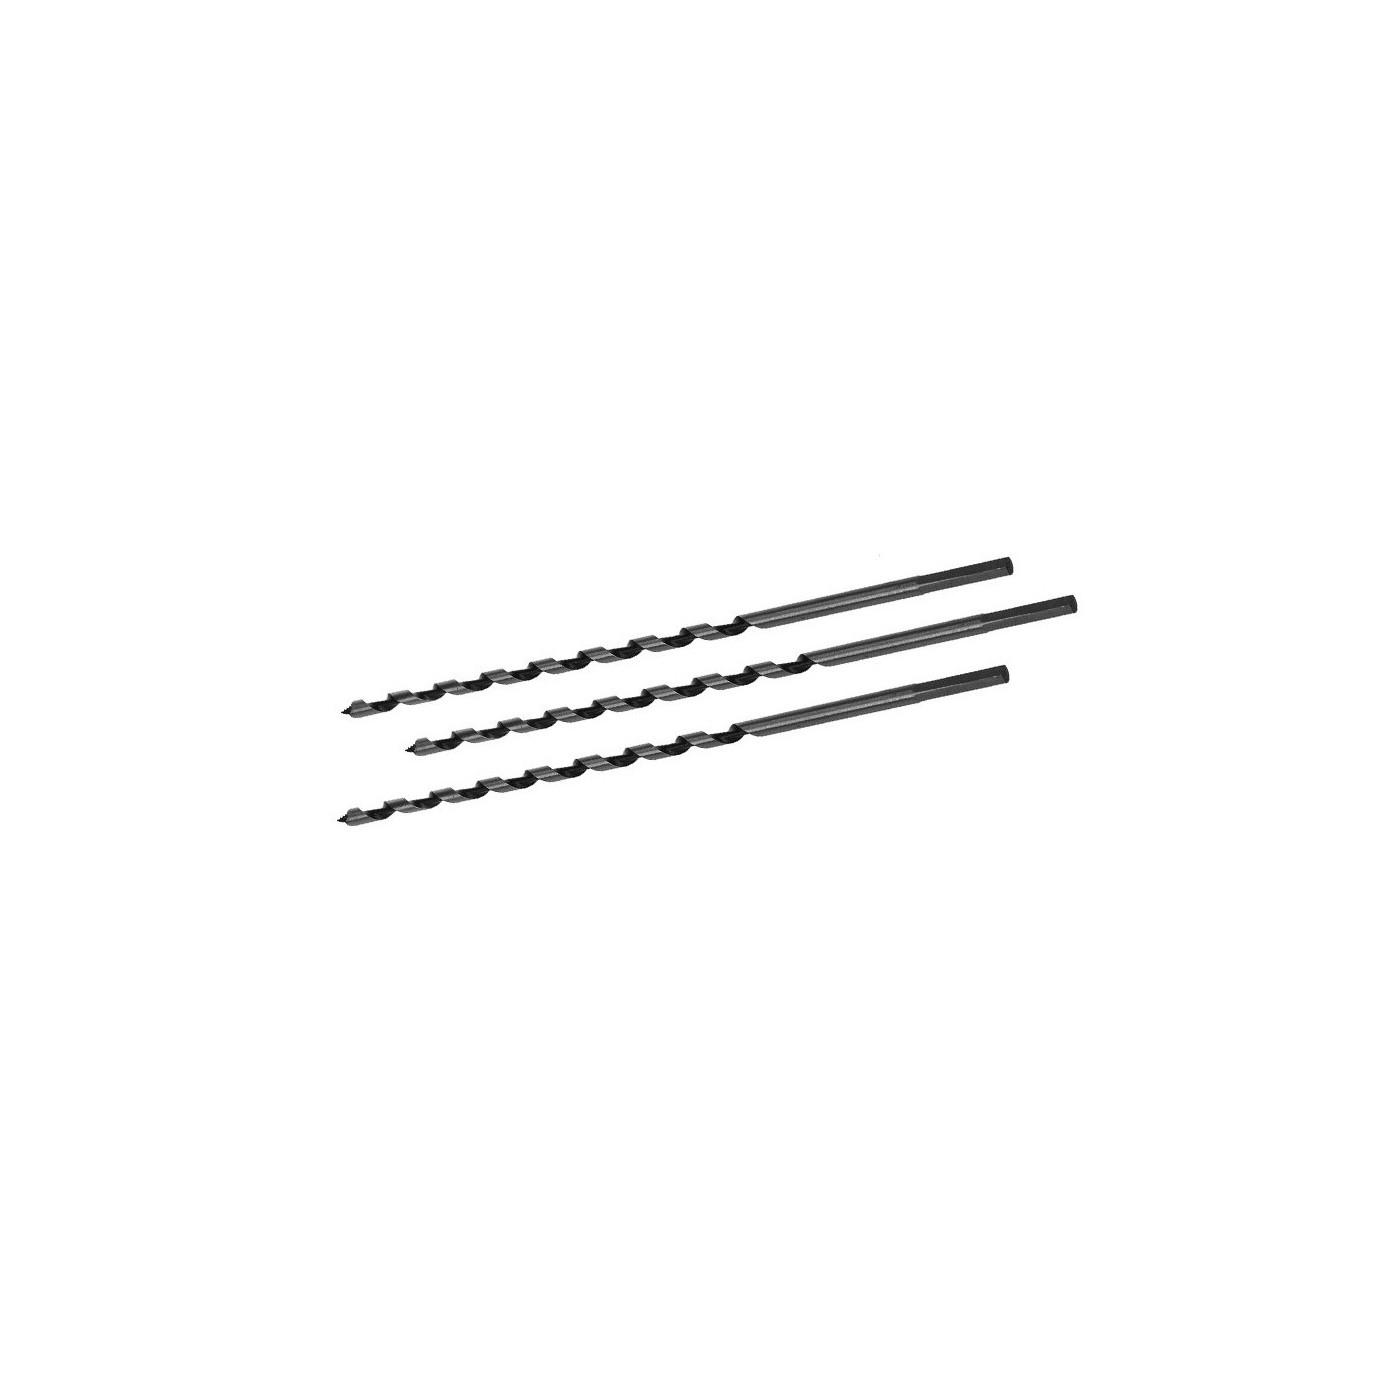 Set of 3 auger drill bits for wood, 10x230 mm